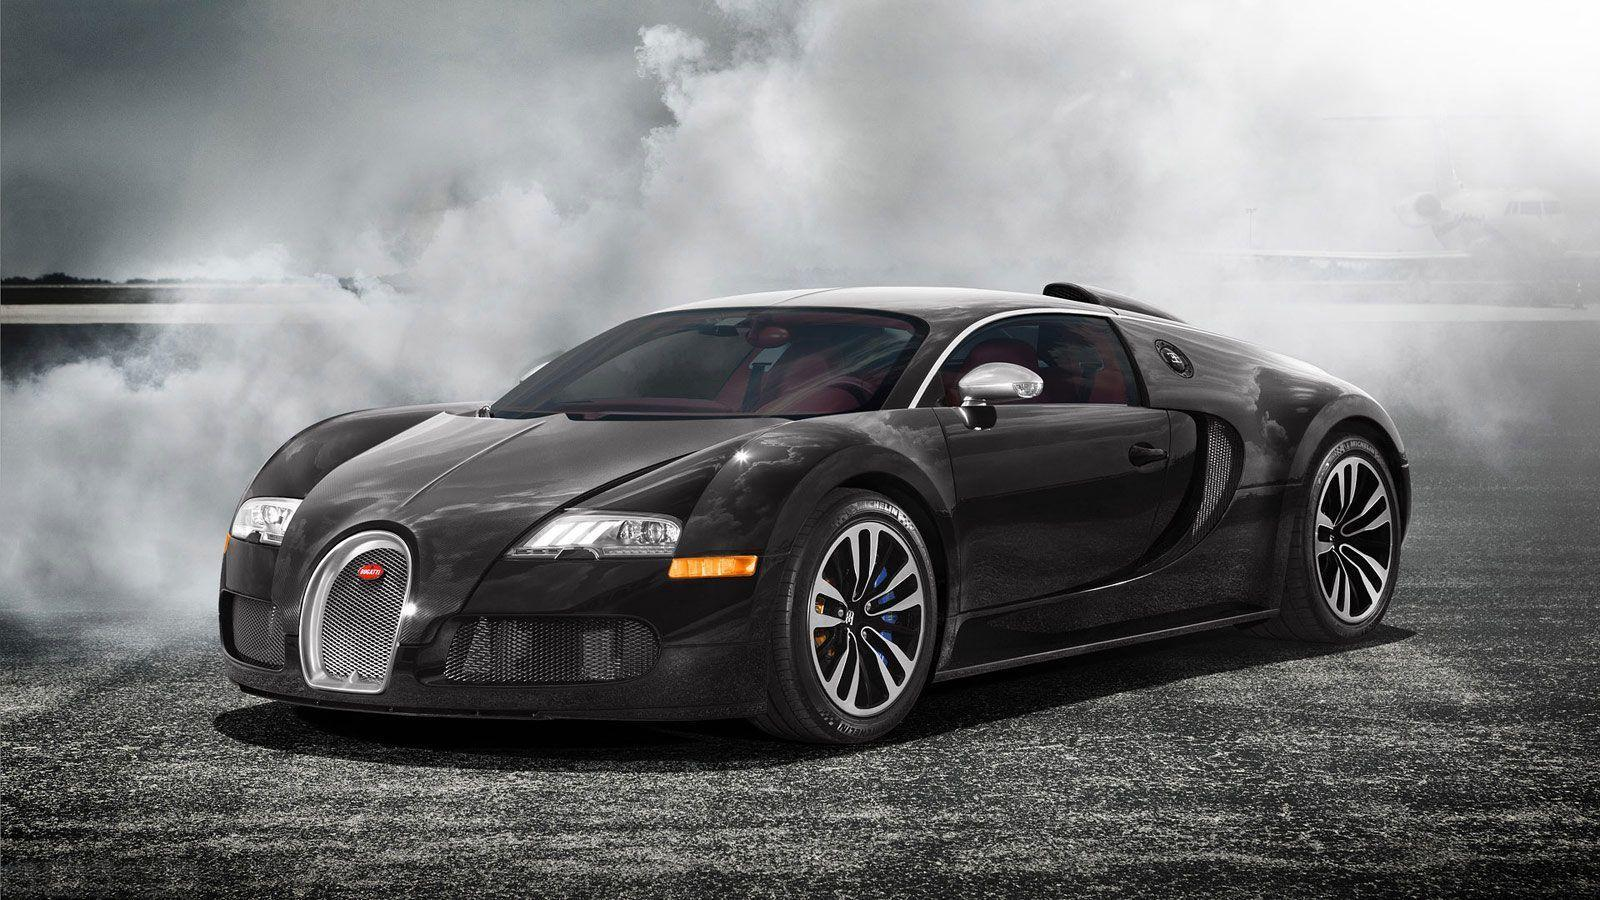 sports cars wallpapers 2015 wallpaper cavenothing found for sport cars coming out in 2015 hd car wallpaper